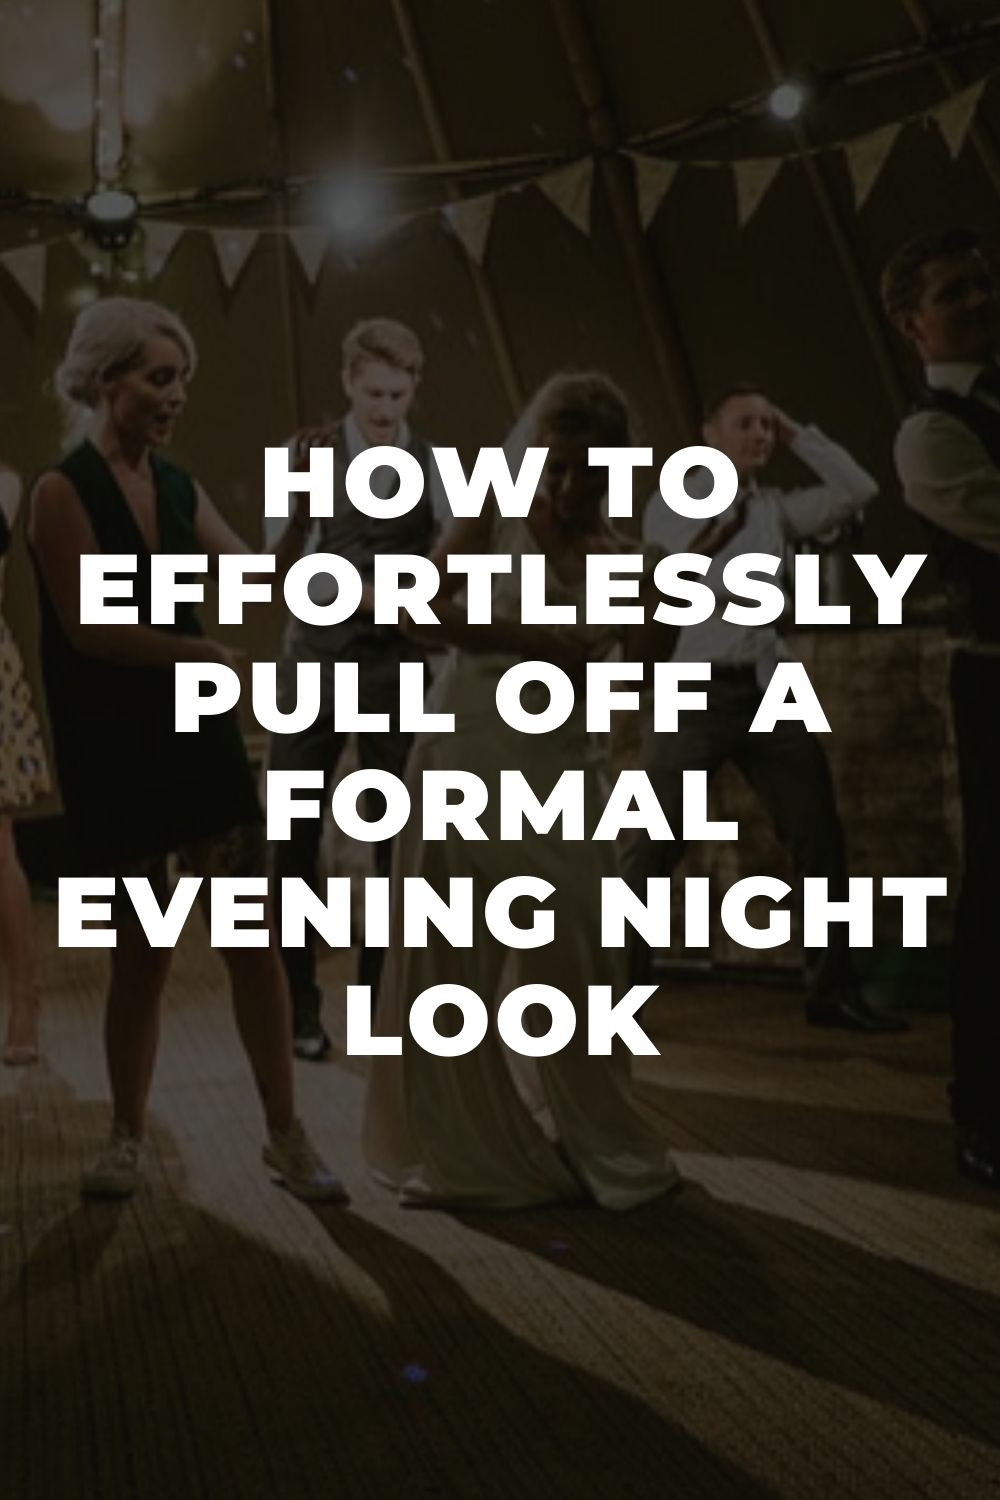 How To Effortlessly Pull Off A Formal Evening Night Look